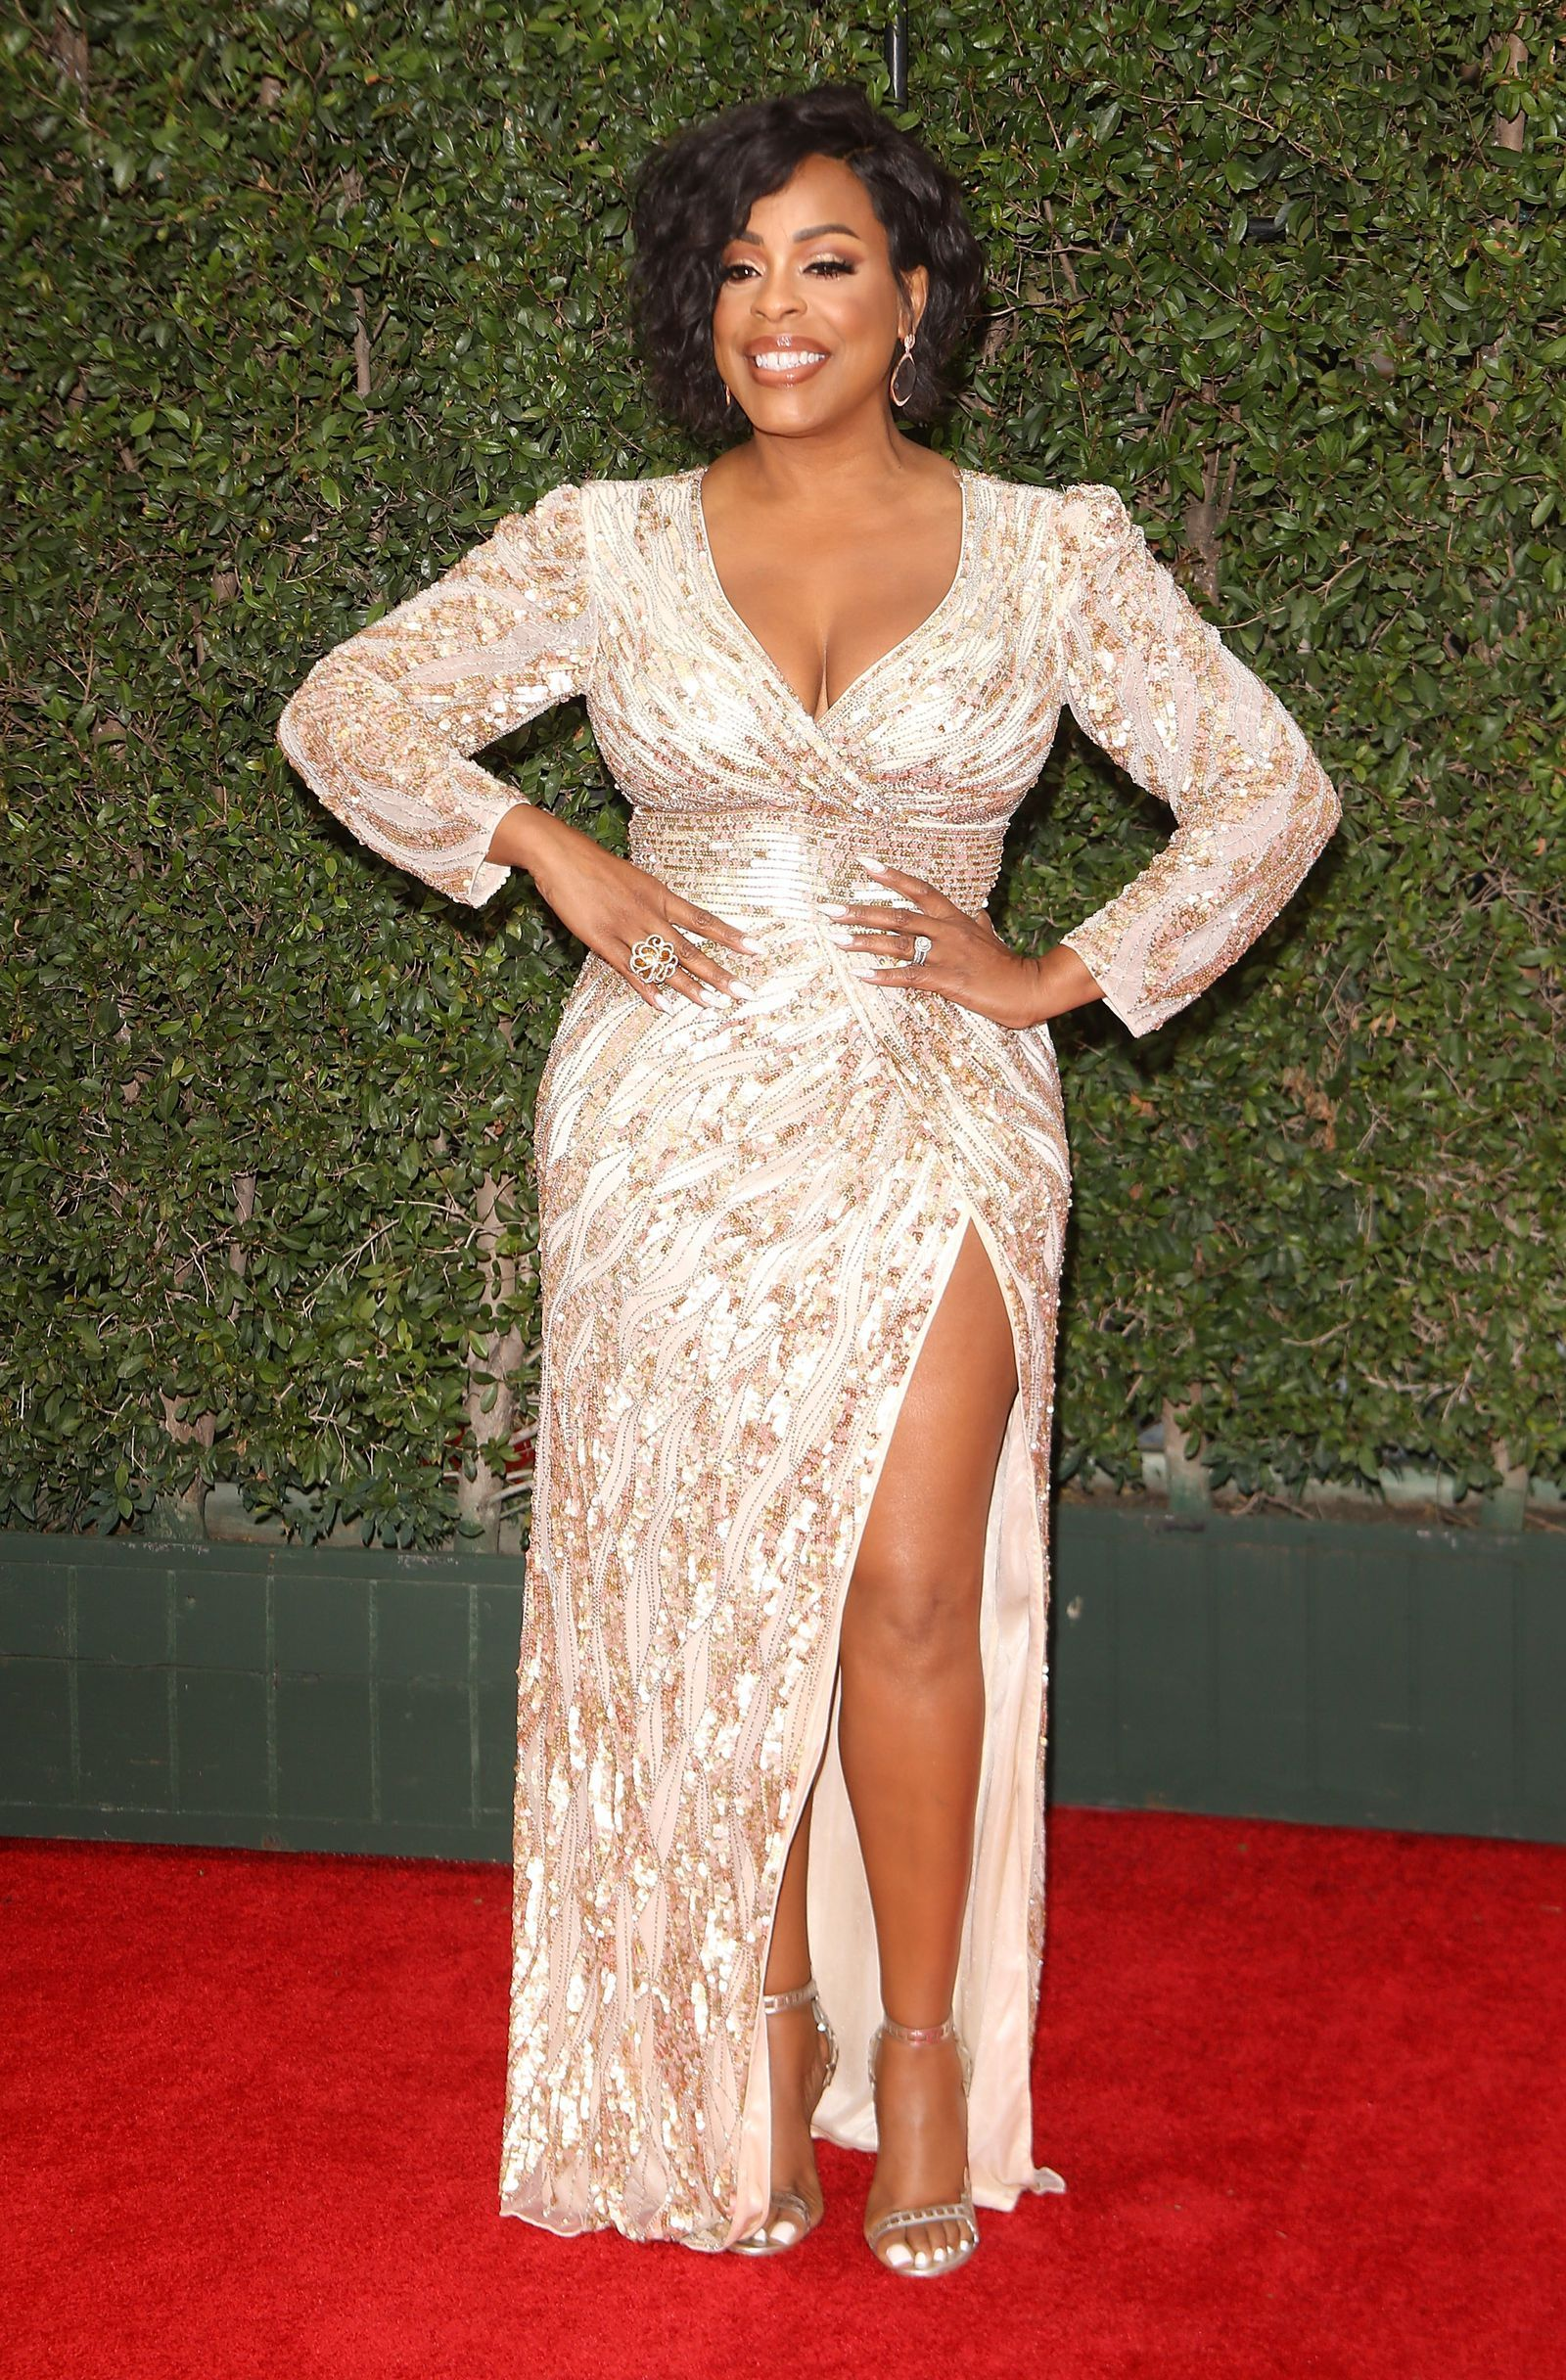 All the Looks From the 49th NAACP Image Awards Red Carpet